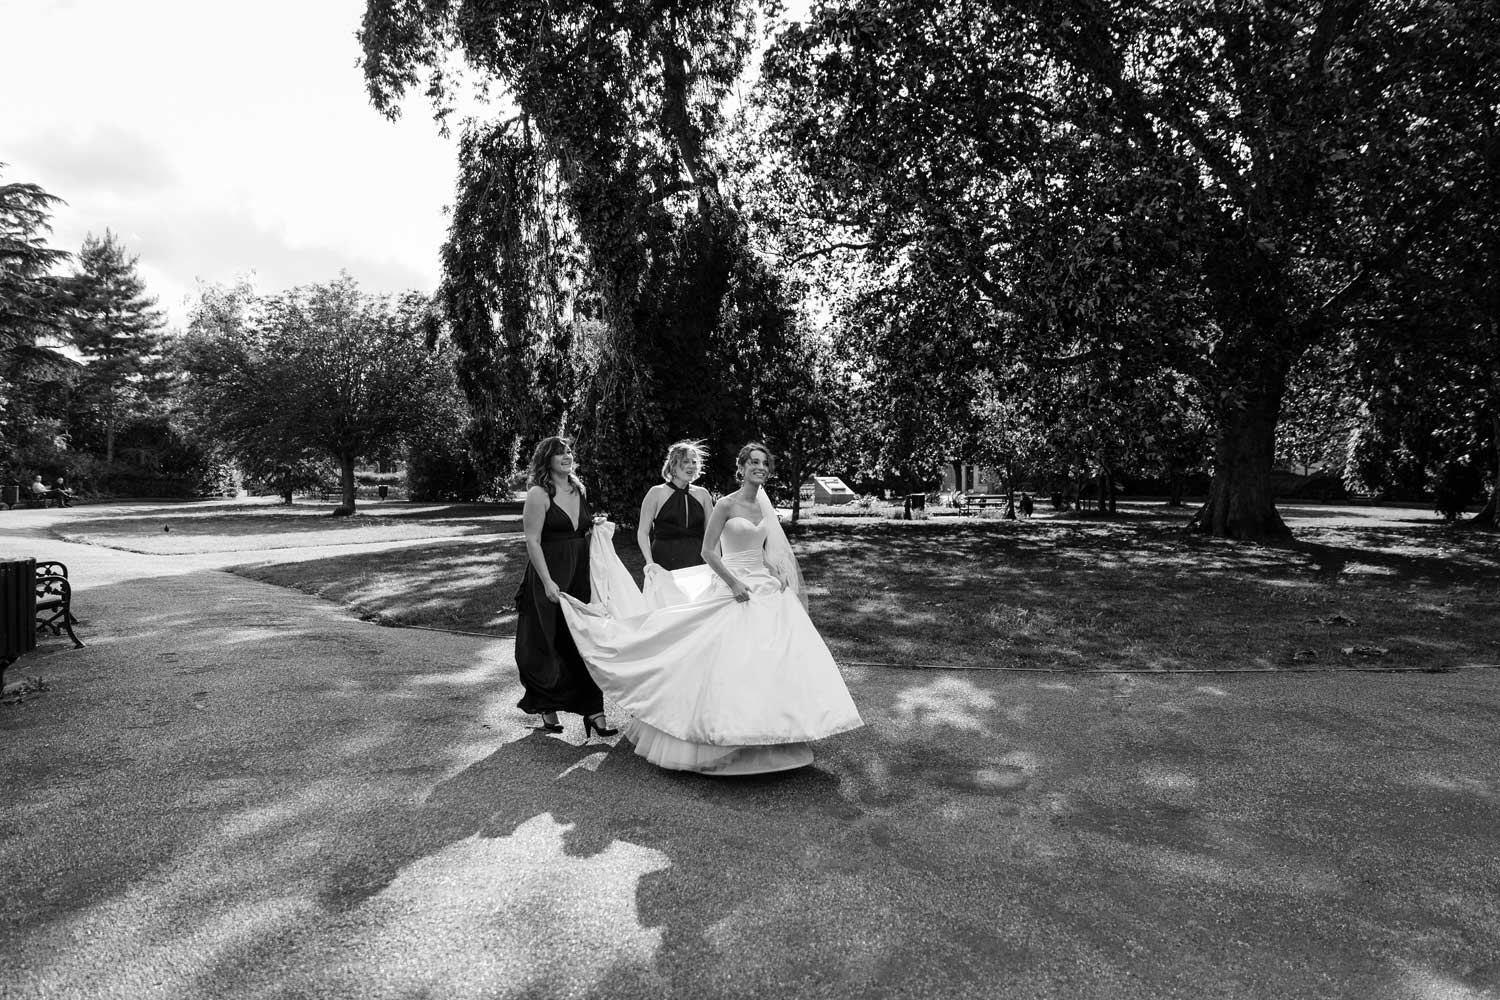 A bride walks through an East London park.